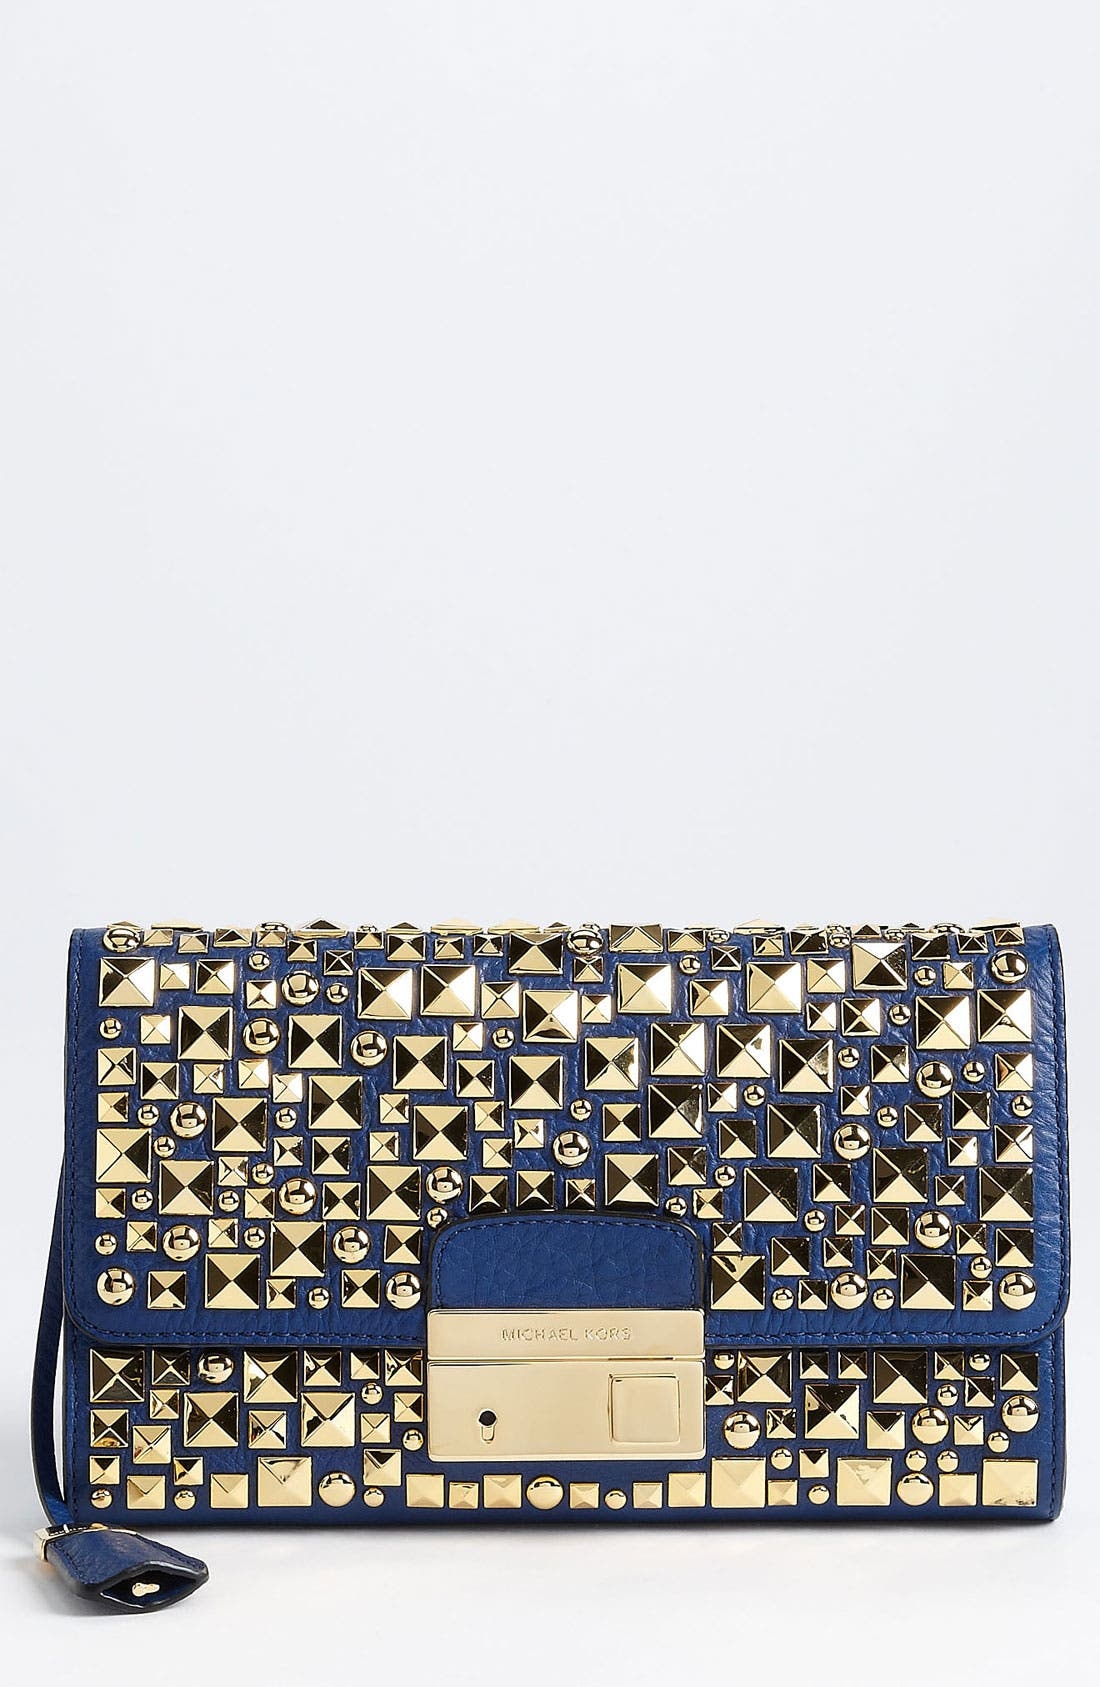 Alternate Image 1 Selected - Michael Kors 'Gia' Studded Leather Clutch